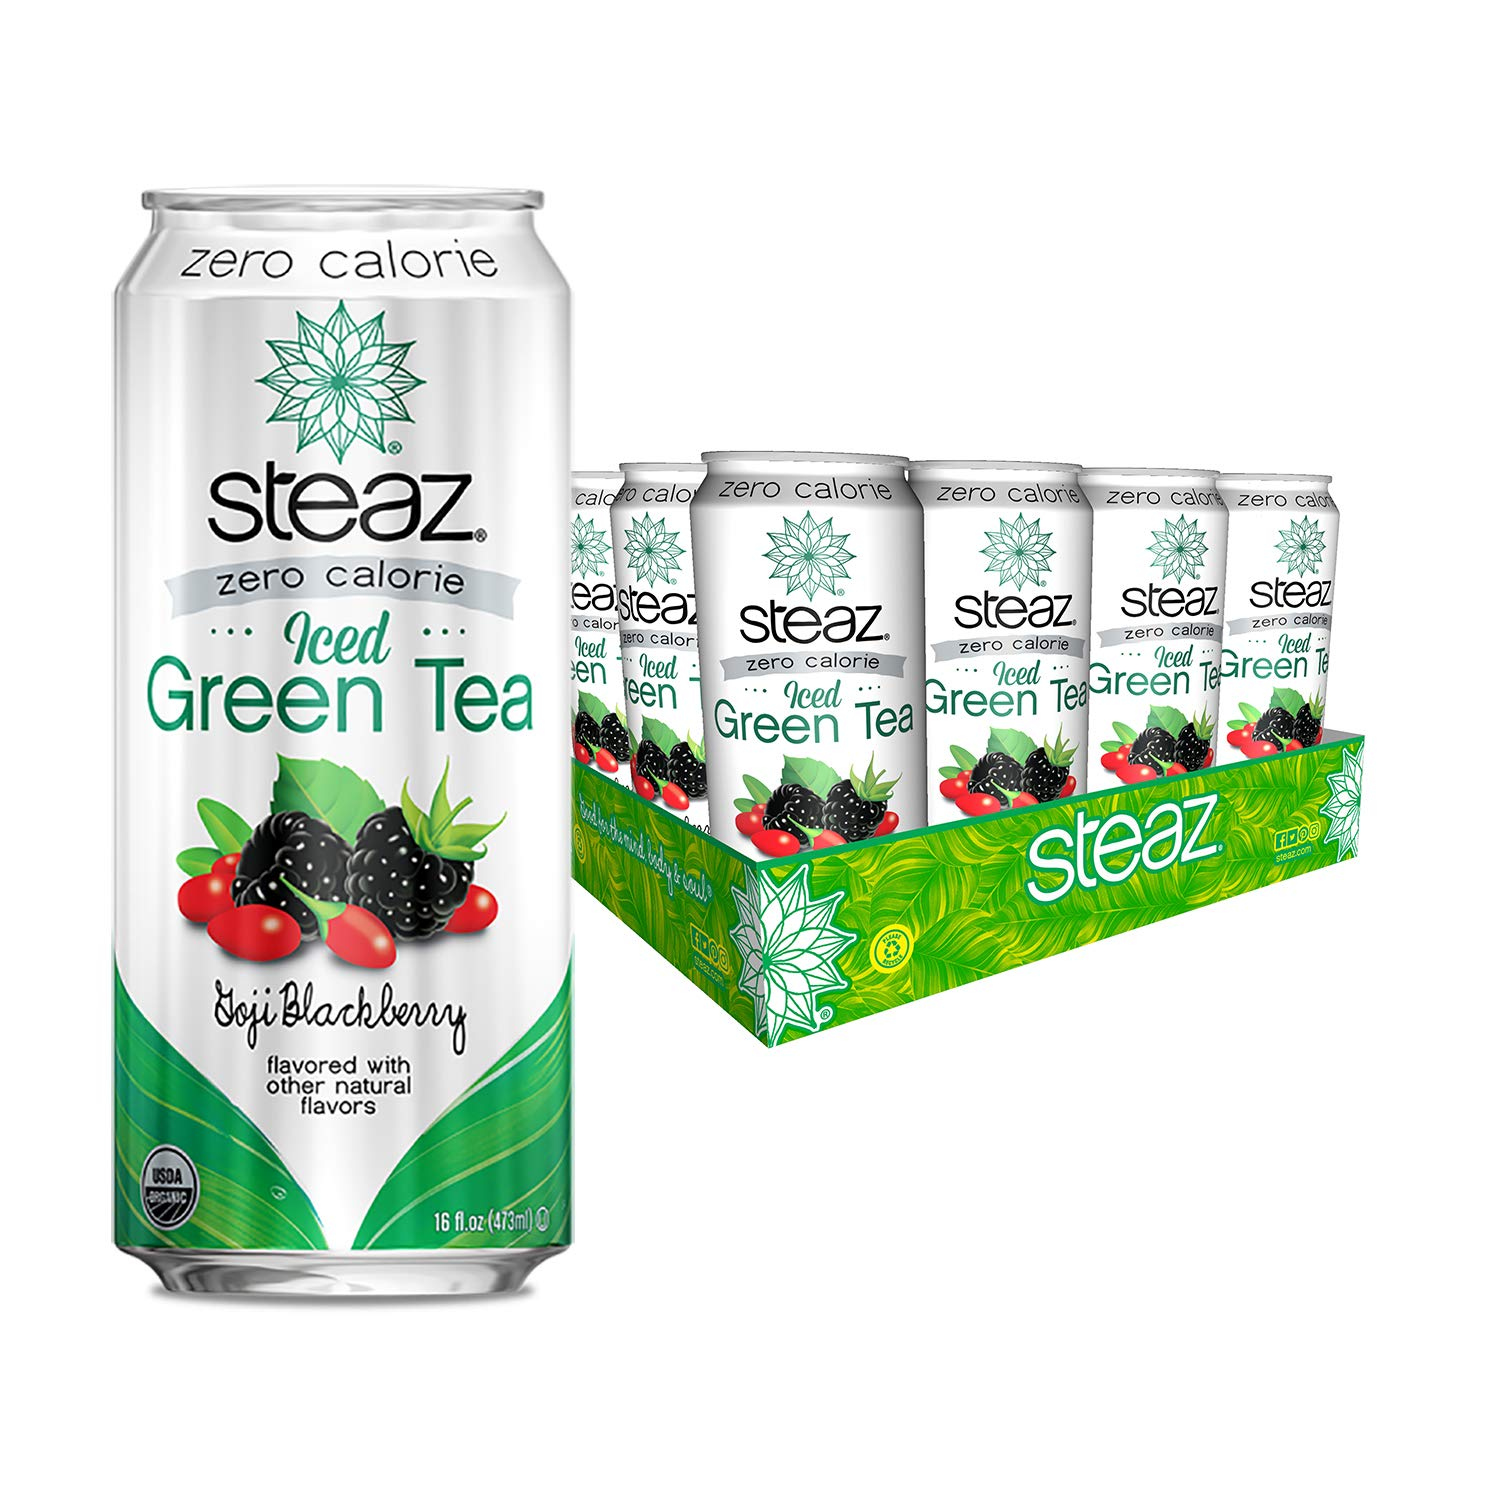 Steaz Organic Zero Calorie Goji Blackberry Iced Green Tea ...